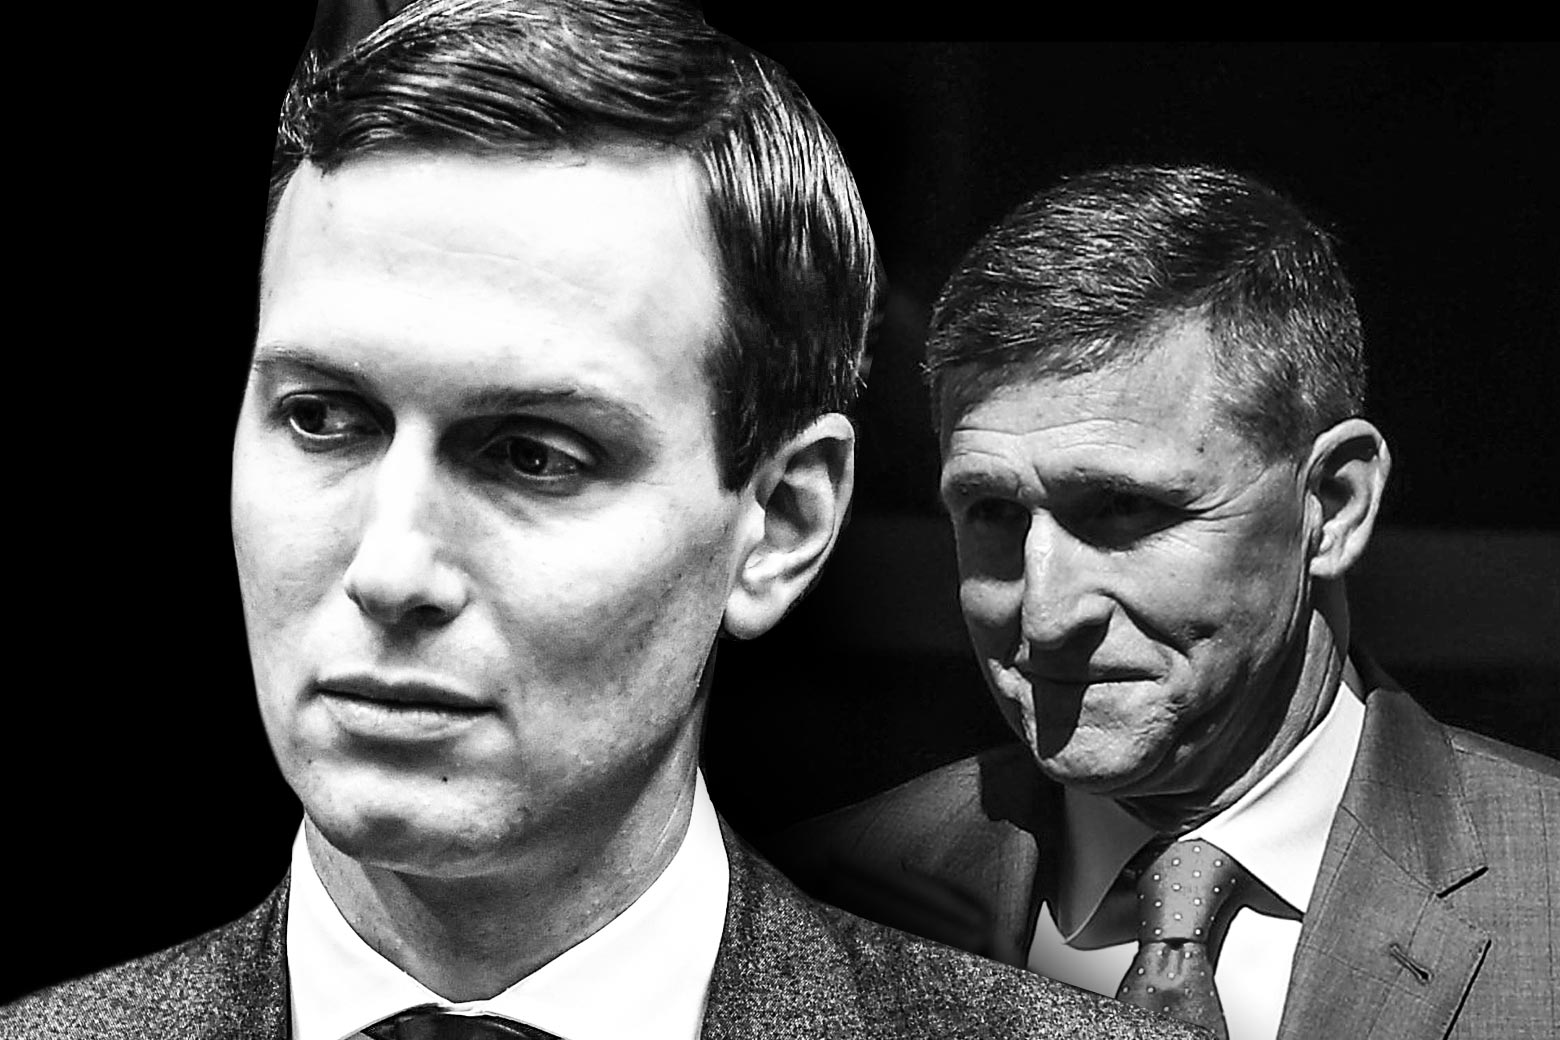 Jared Kushner and Michael Flynn in a composite black-and-white photo.